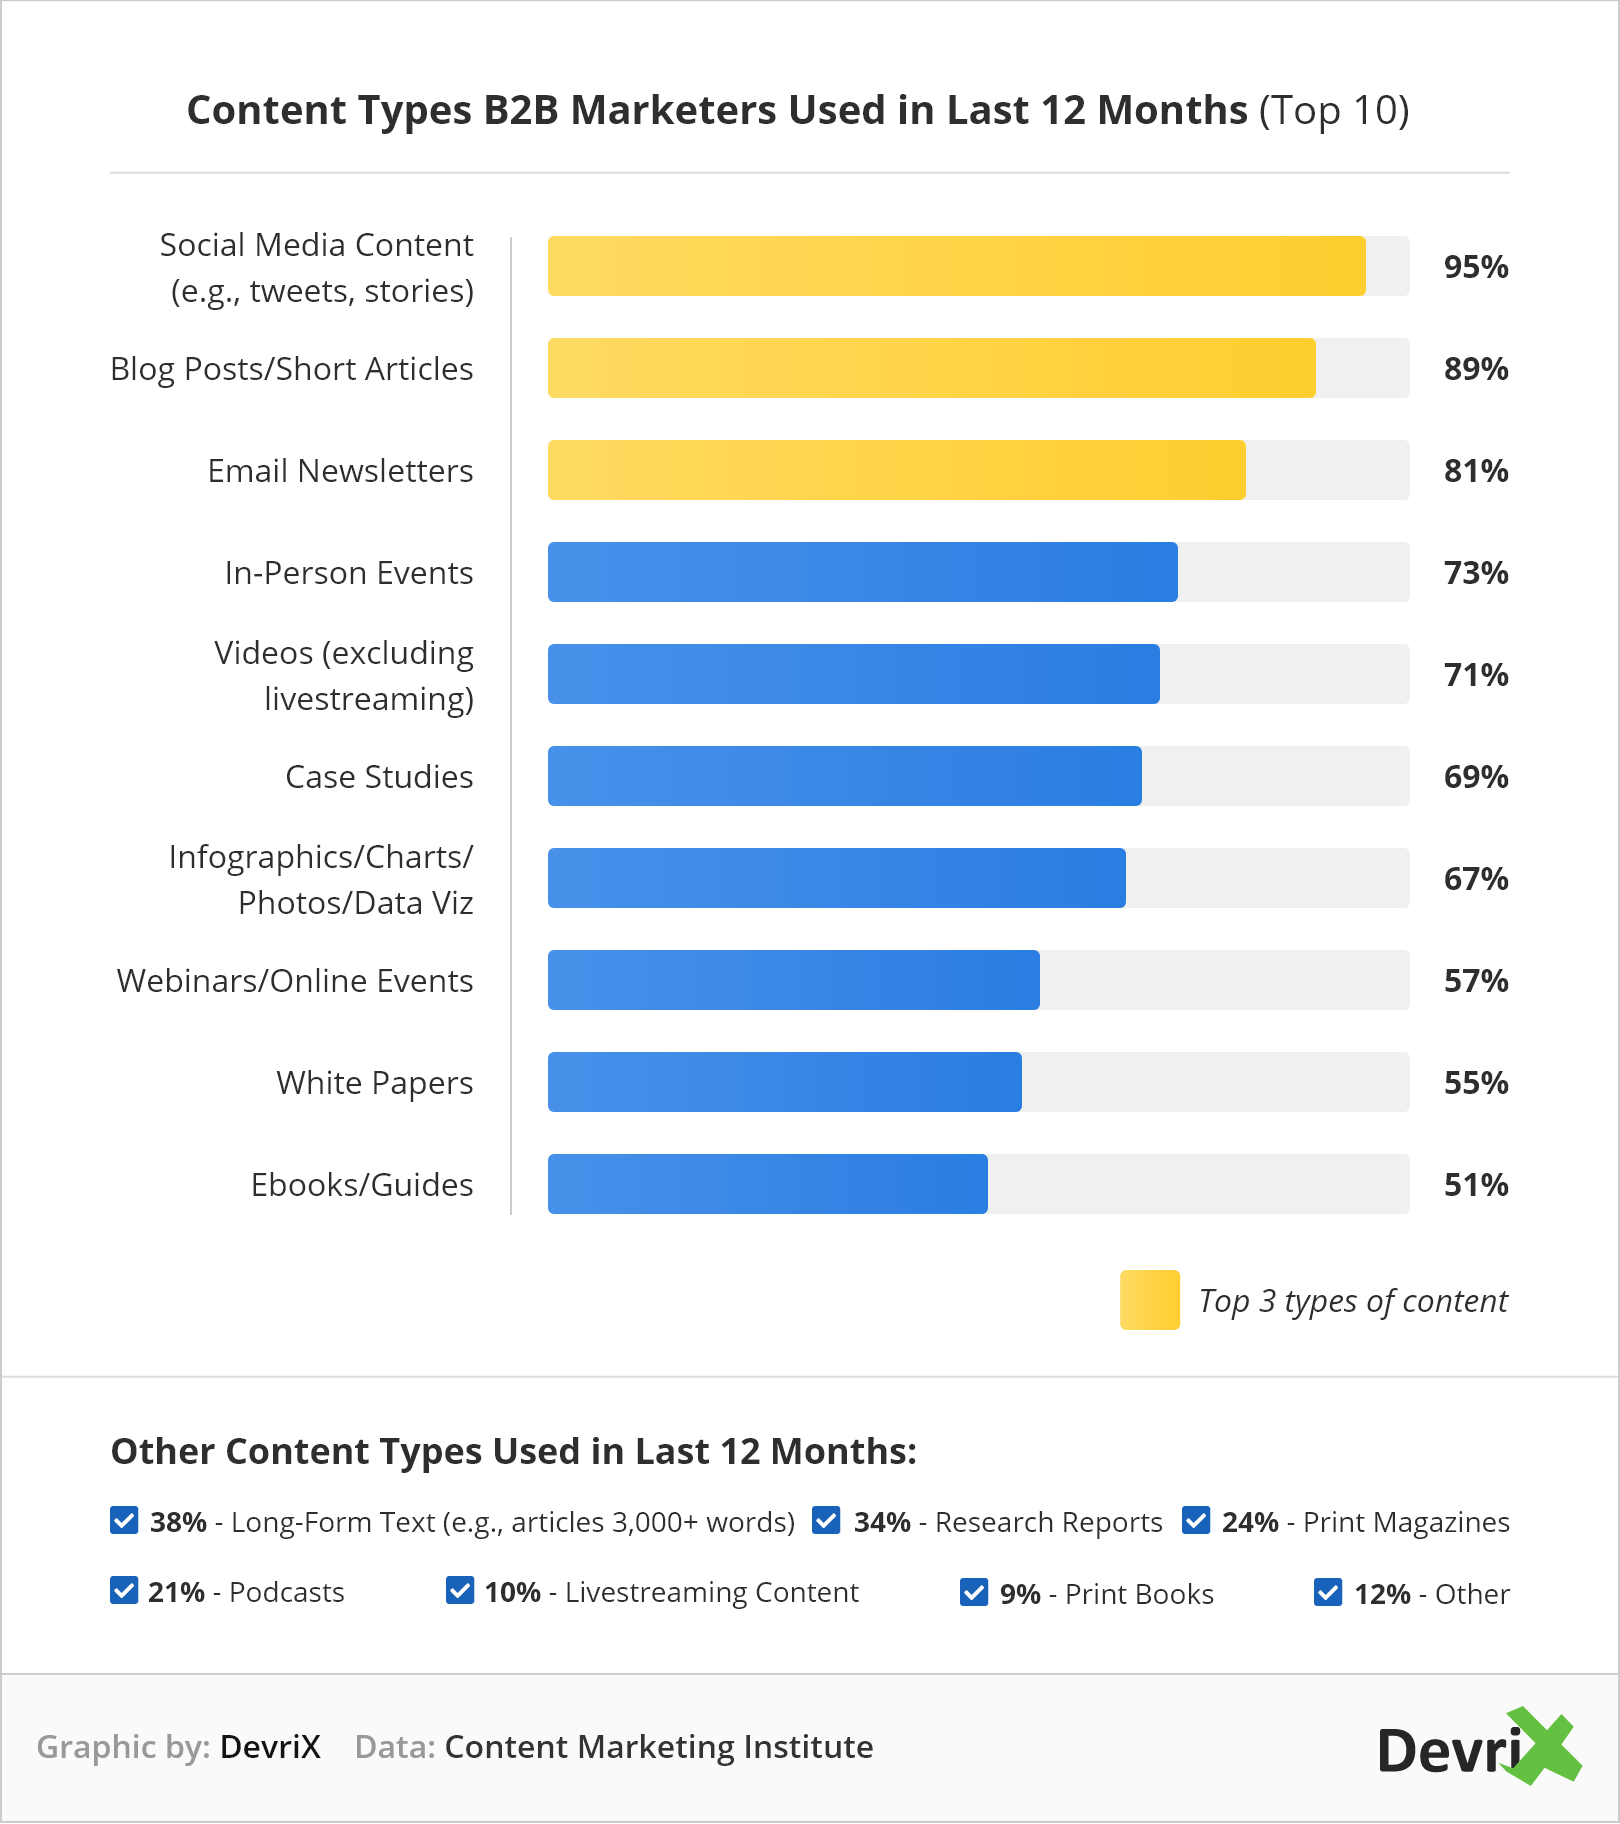 Top B2B content types used in the past 12 months